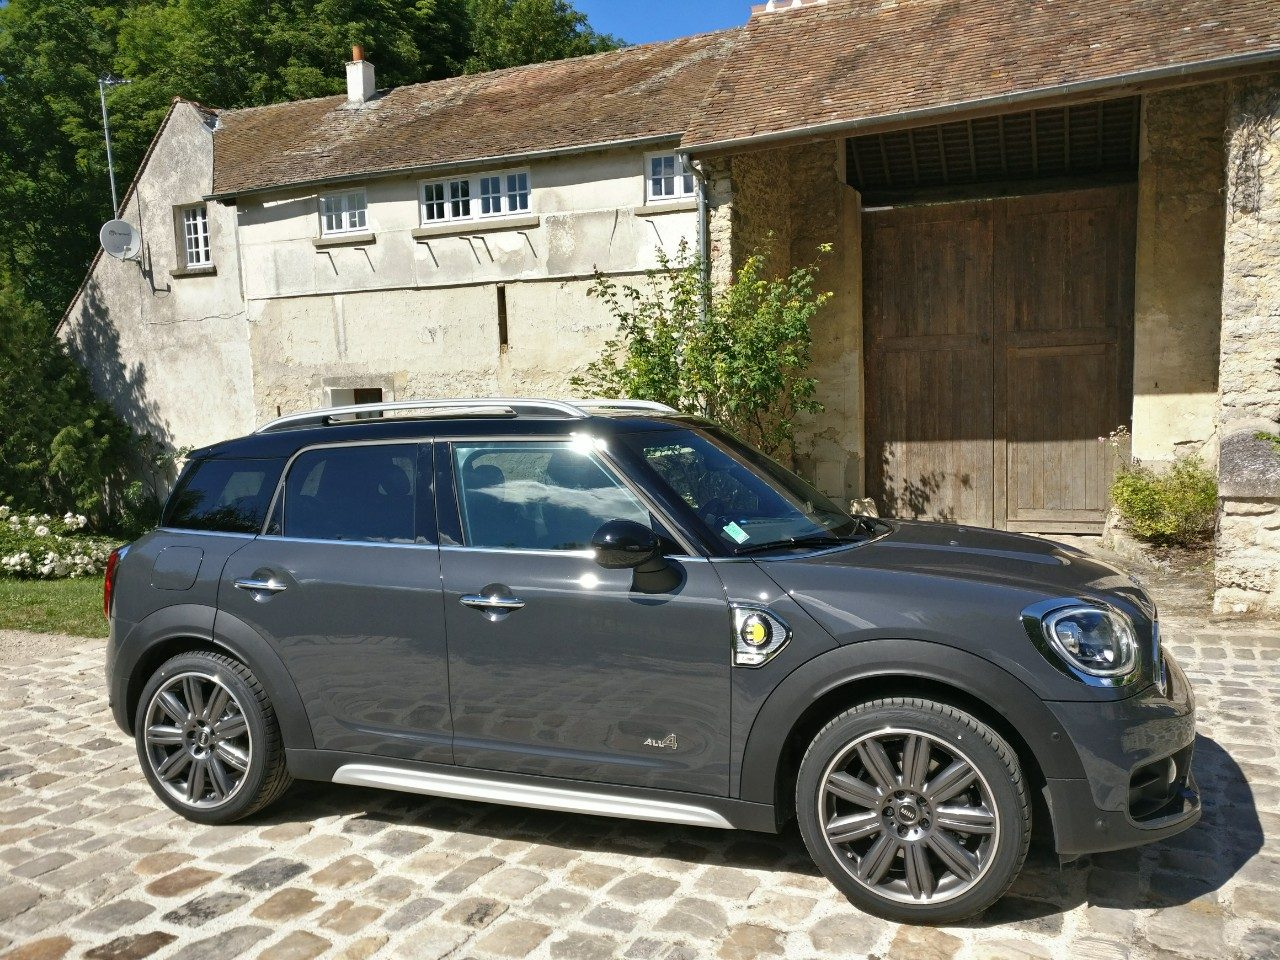 essai mini countryman se 2017 une hybride rechargeable chic british. Black Bedroom Furniture Sets. Home Design Ideas